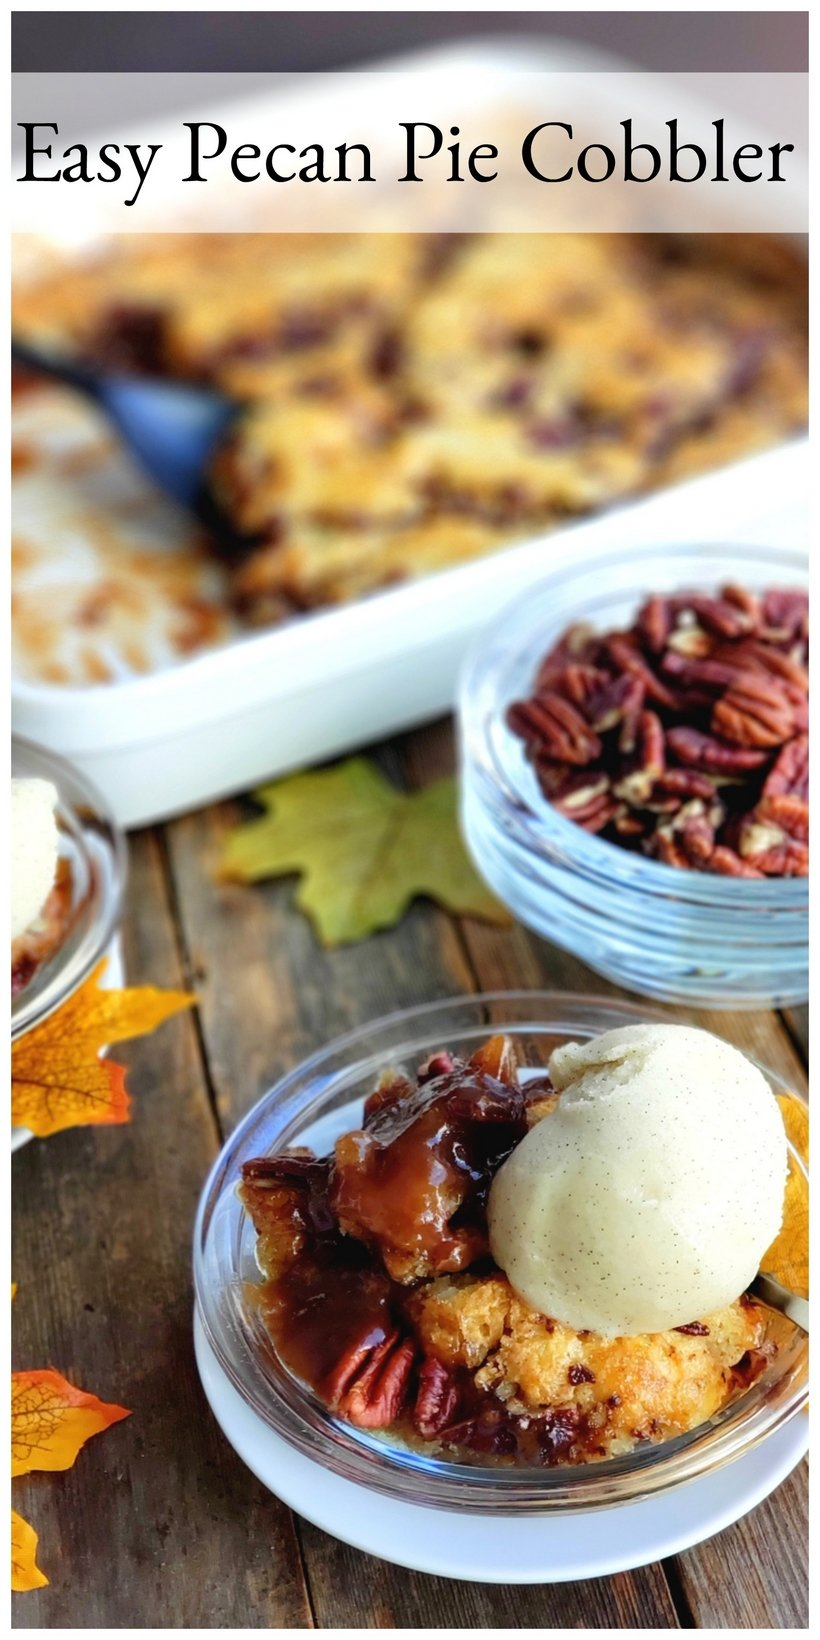 When it comes to Thanksgiving dessert ideas for a crowd, this Easy Pecan Pie Cobbler is the answer to your holiday dessert dreams. There is something amazing about taking the simplicity of cobbler and turning it into the richness of pecan pie. #pecanpie #pecanpiecobbler #pecanpiecobblerrecipe #pecanpiecobblerrecipeeasy #thanksgivingdessert #thanksgivingdesserts #thanksgivingdessertsforacrowd #thanksgivingdessertseasy #thanksgivingdessertideasbaking #easydessertrecipes #easydessert #pecans  via @cmpollak1